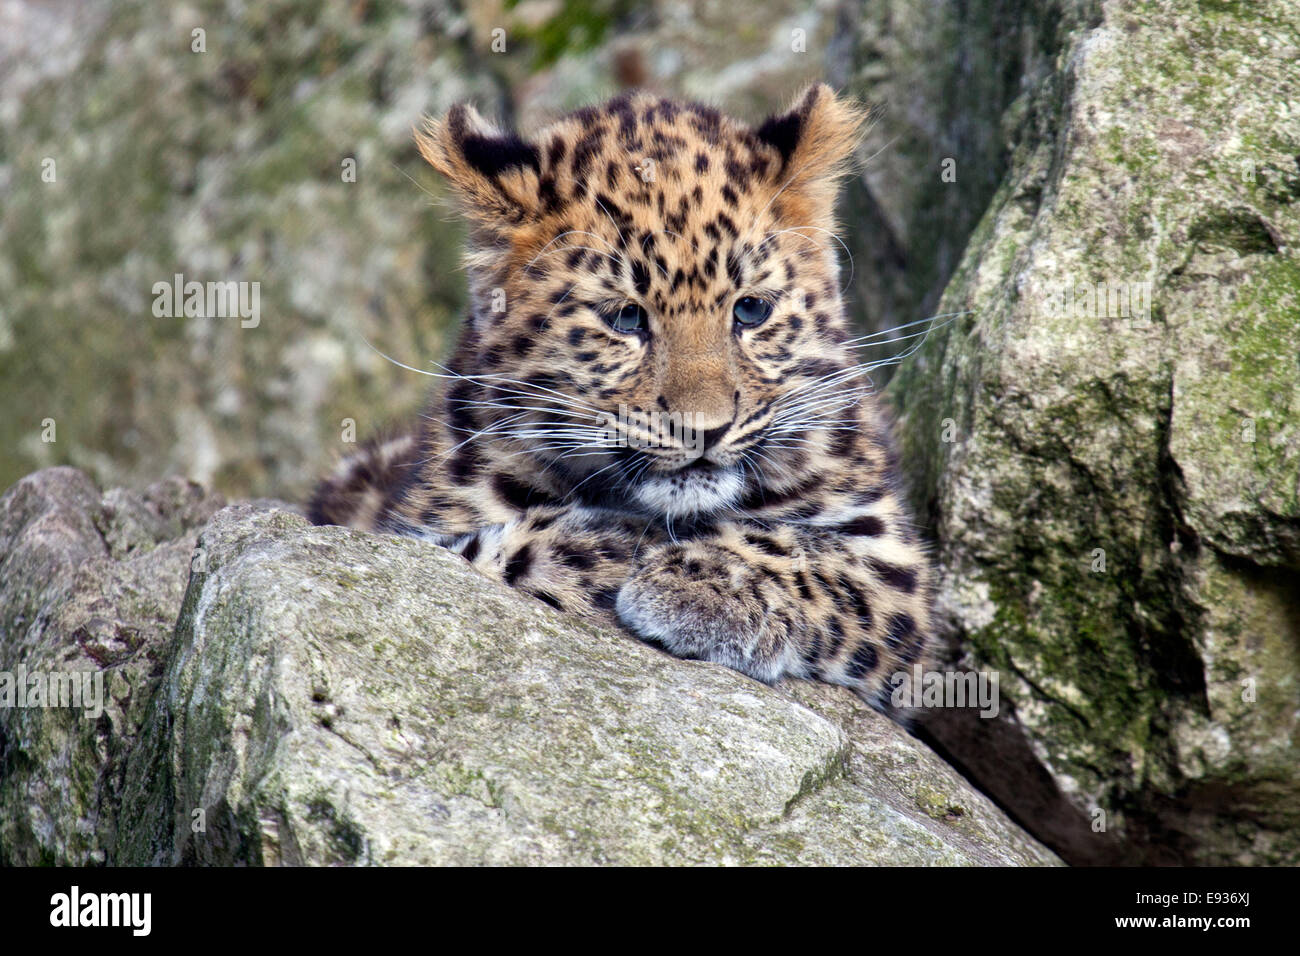 An Amur Leopard cub sitting in some rocks - Stock Image